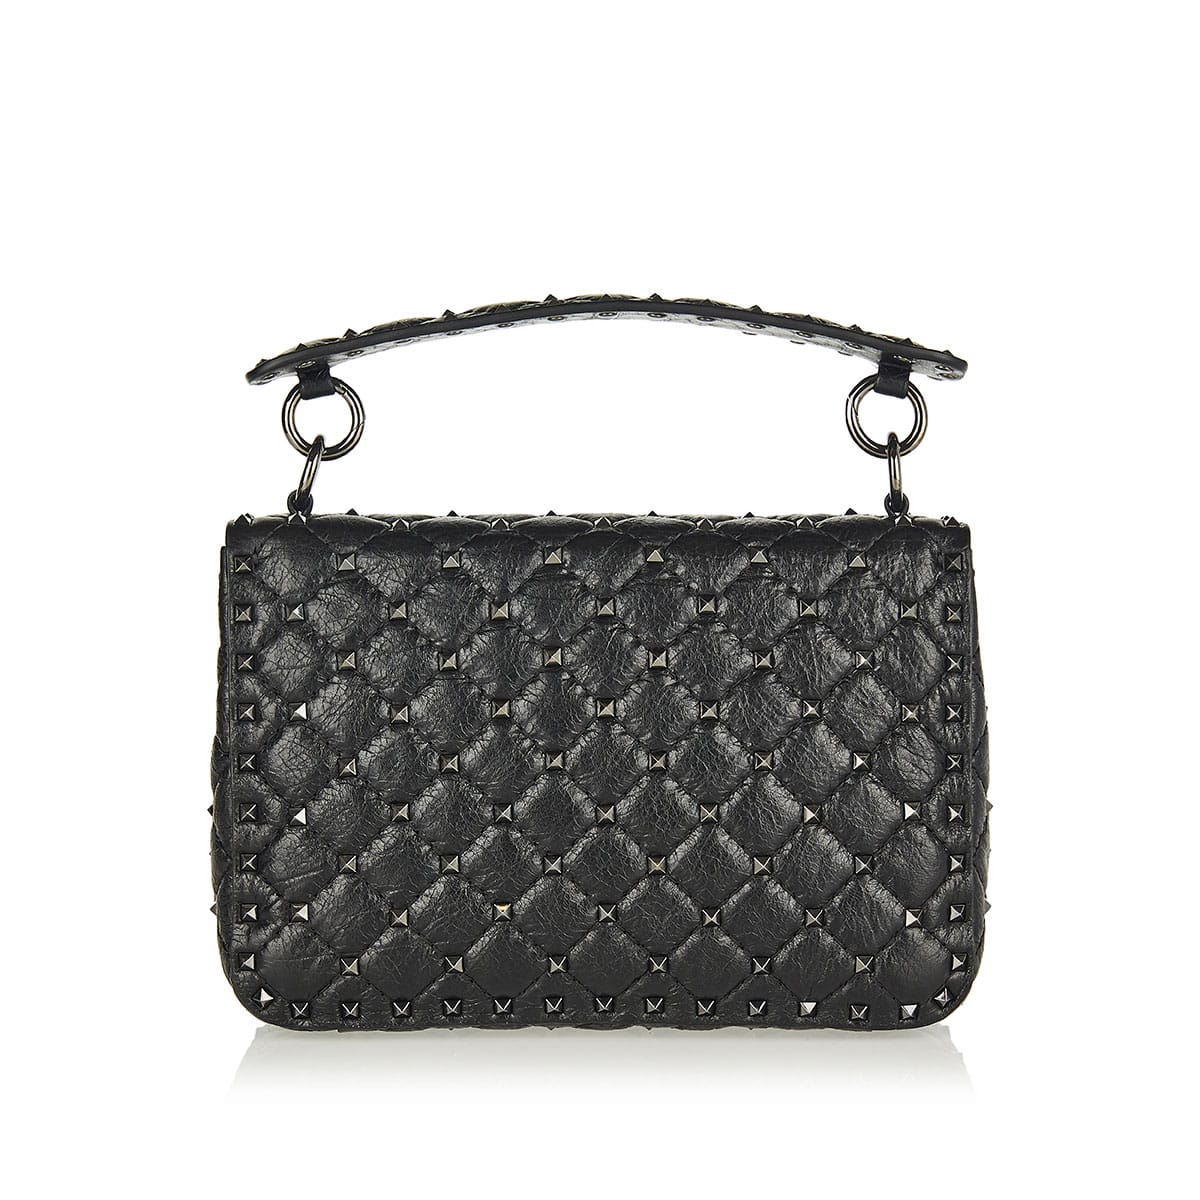 Rockstud Spike crackle-leather chain bag